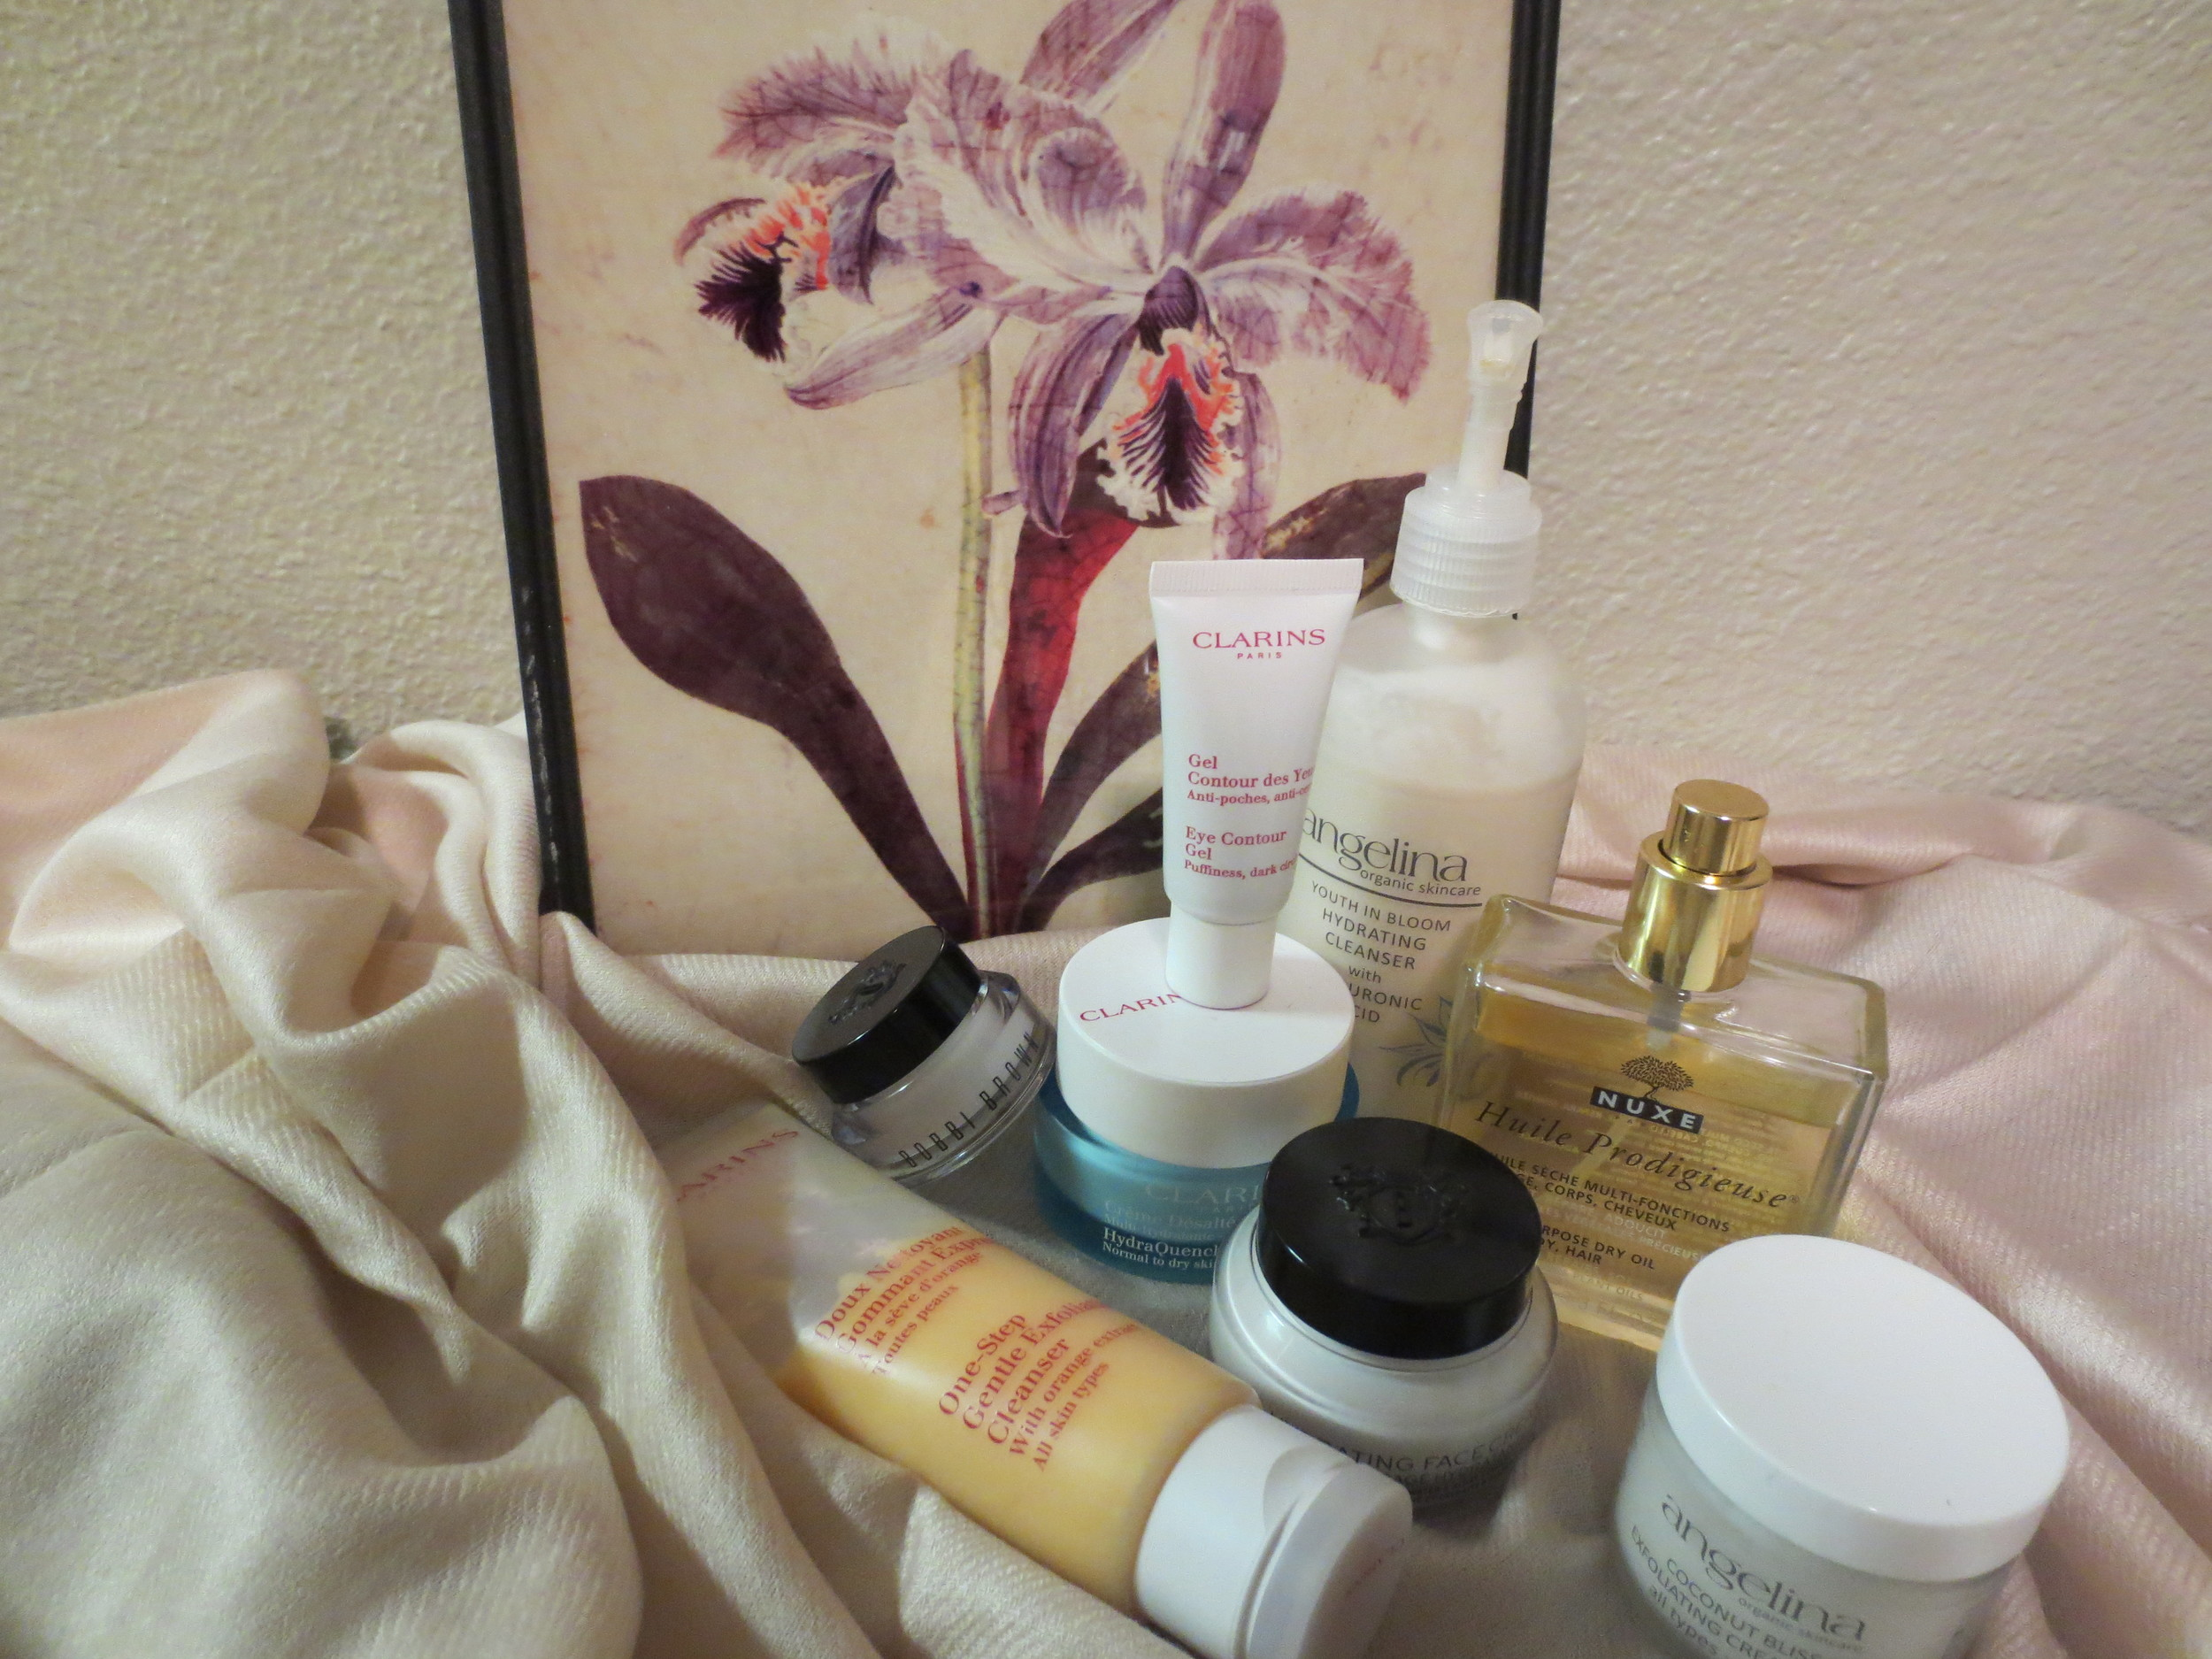 My fall skincare staples.